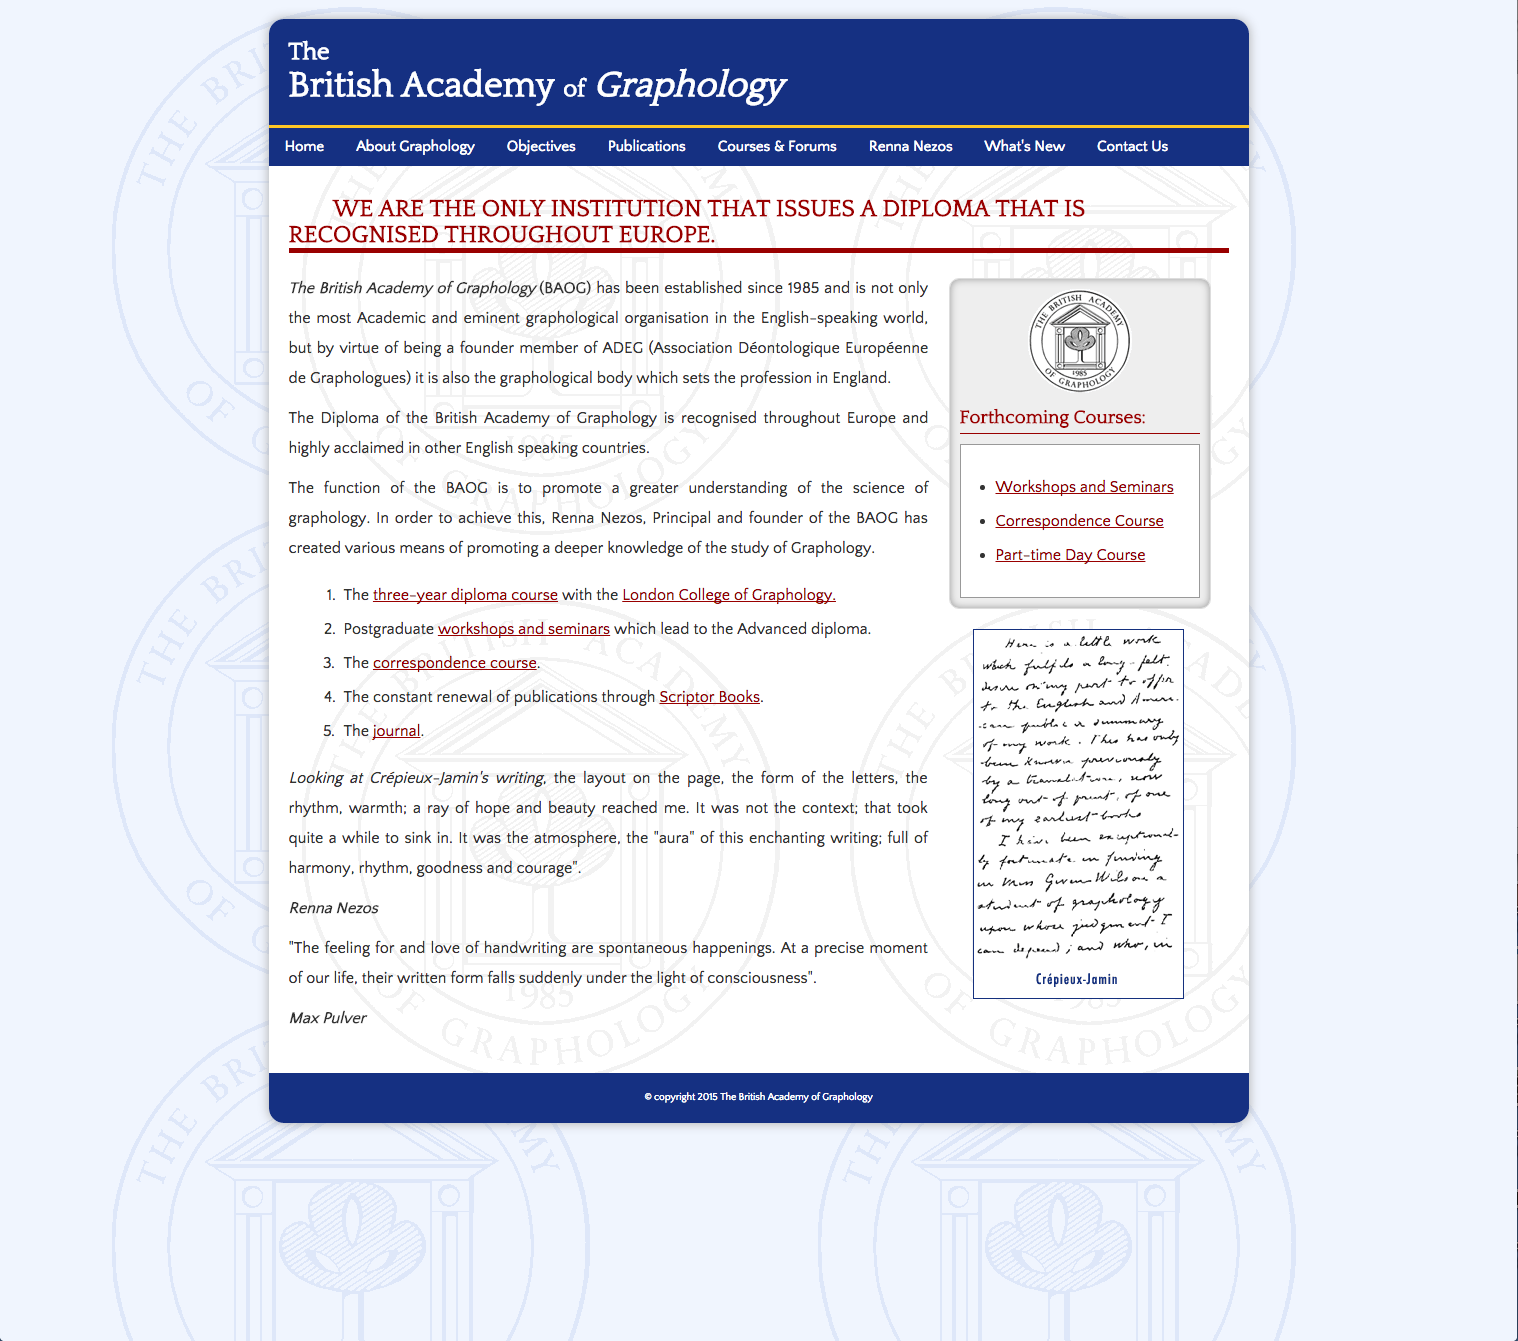 The British Academy of Graphology